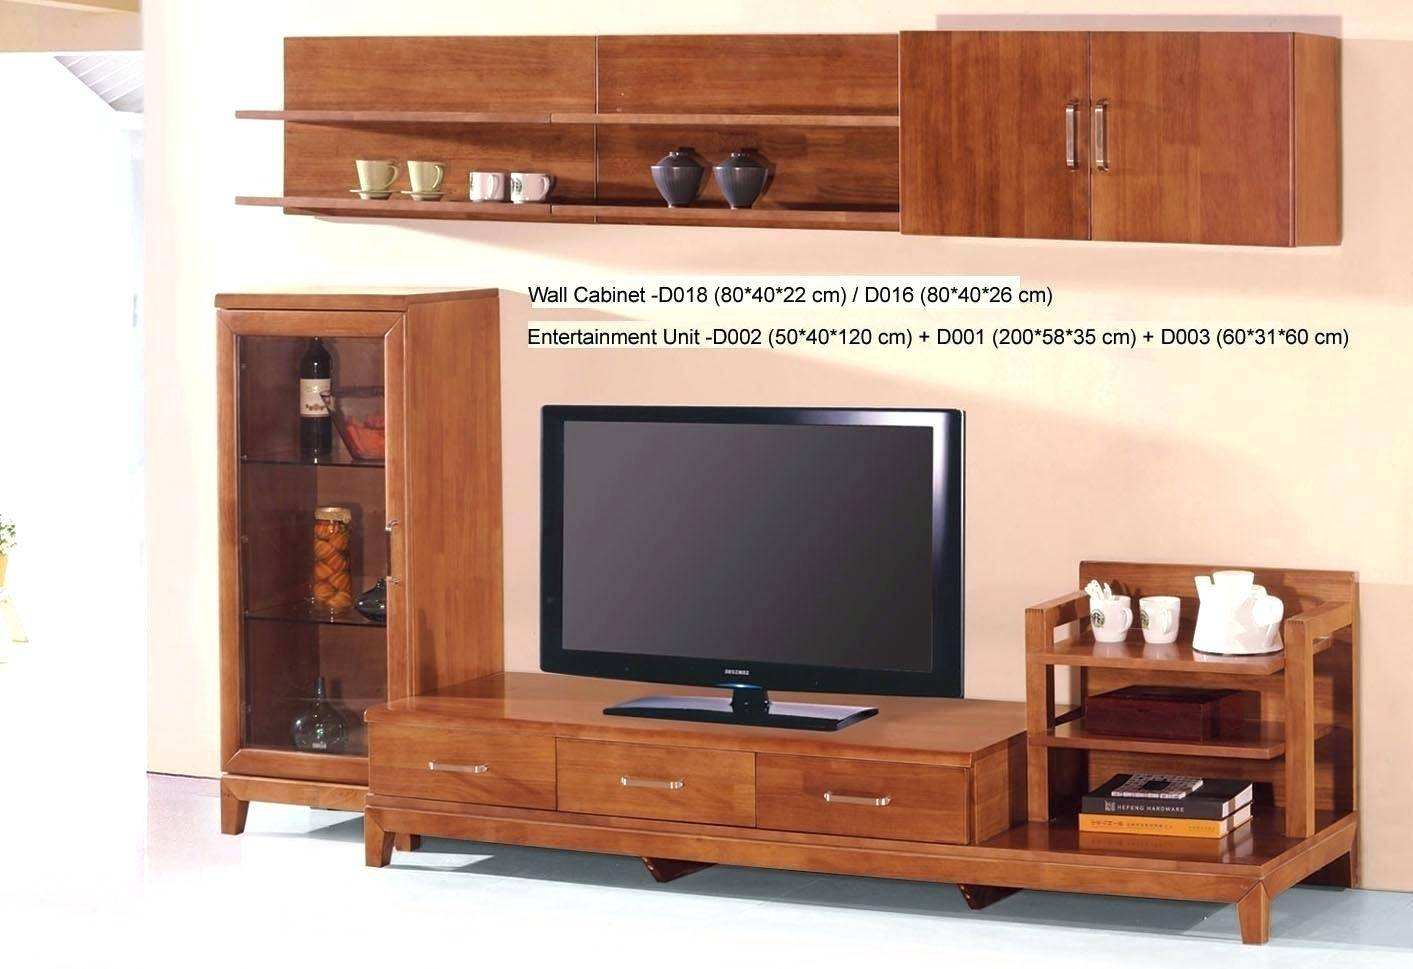 Tv Stand : Bright Country Style Tv Stand Unit Idea In Honey Oak pertaining to Honey Oak Tv Stands (Image 9 of 15)